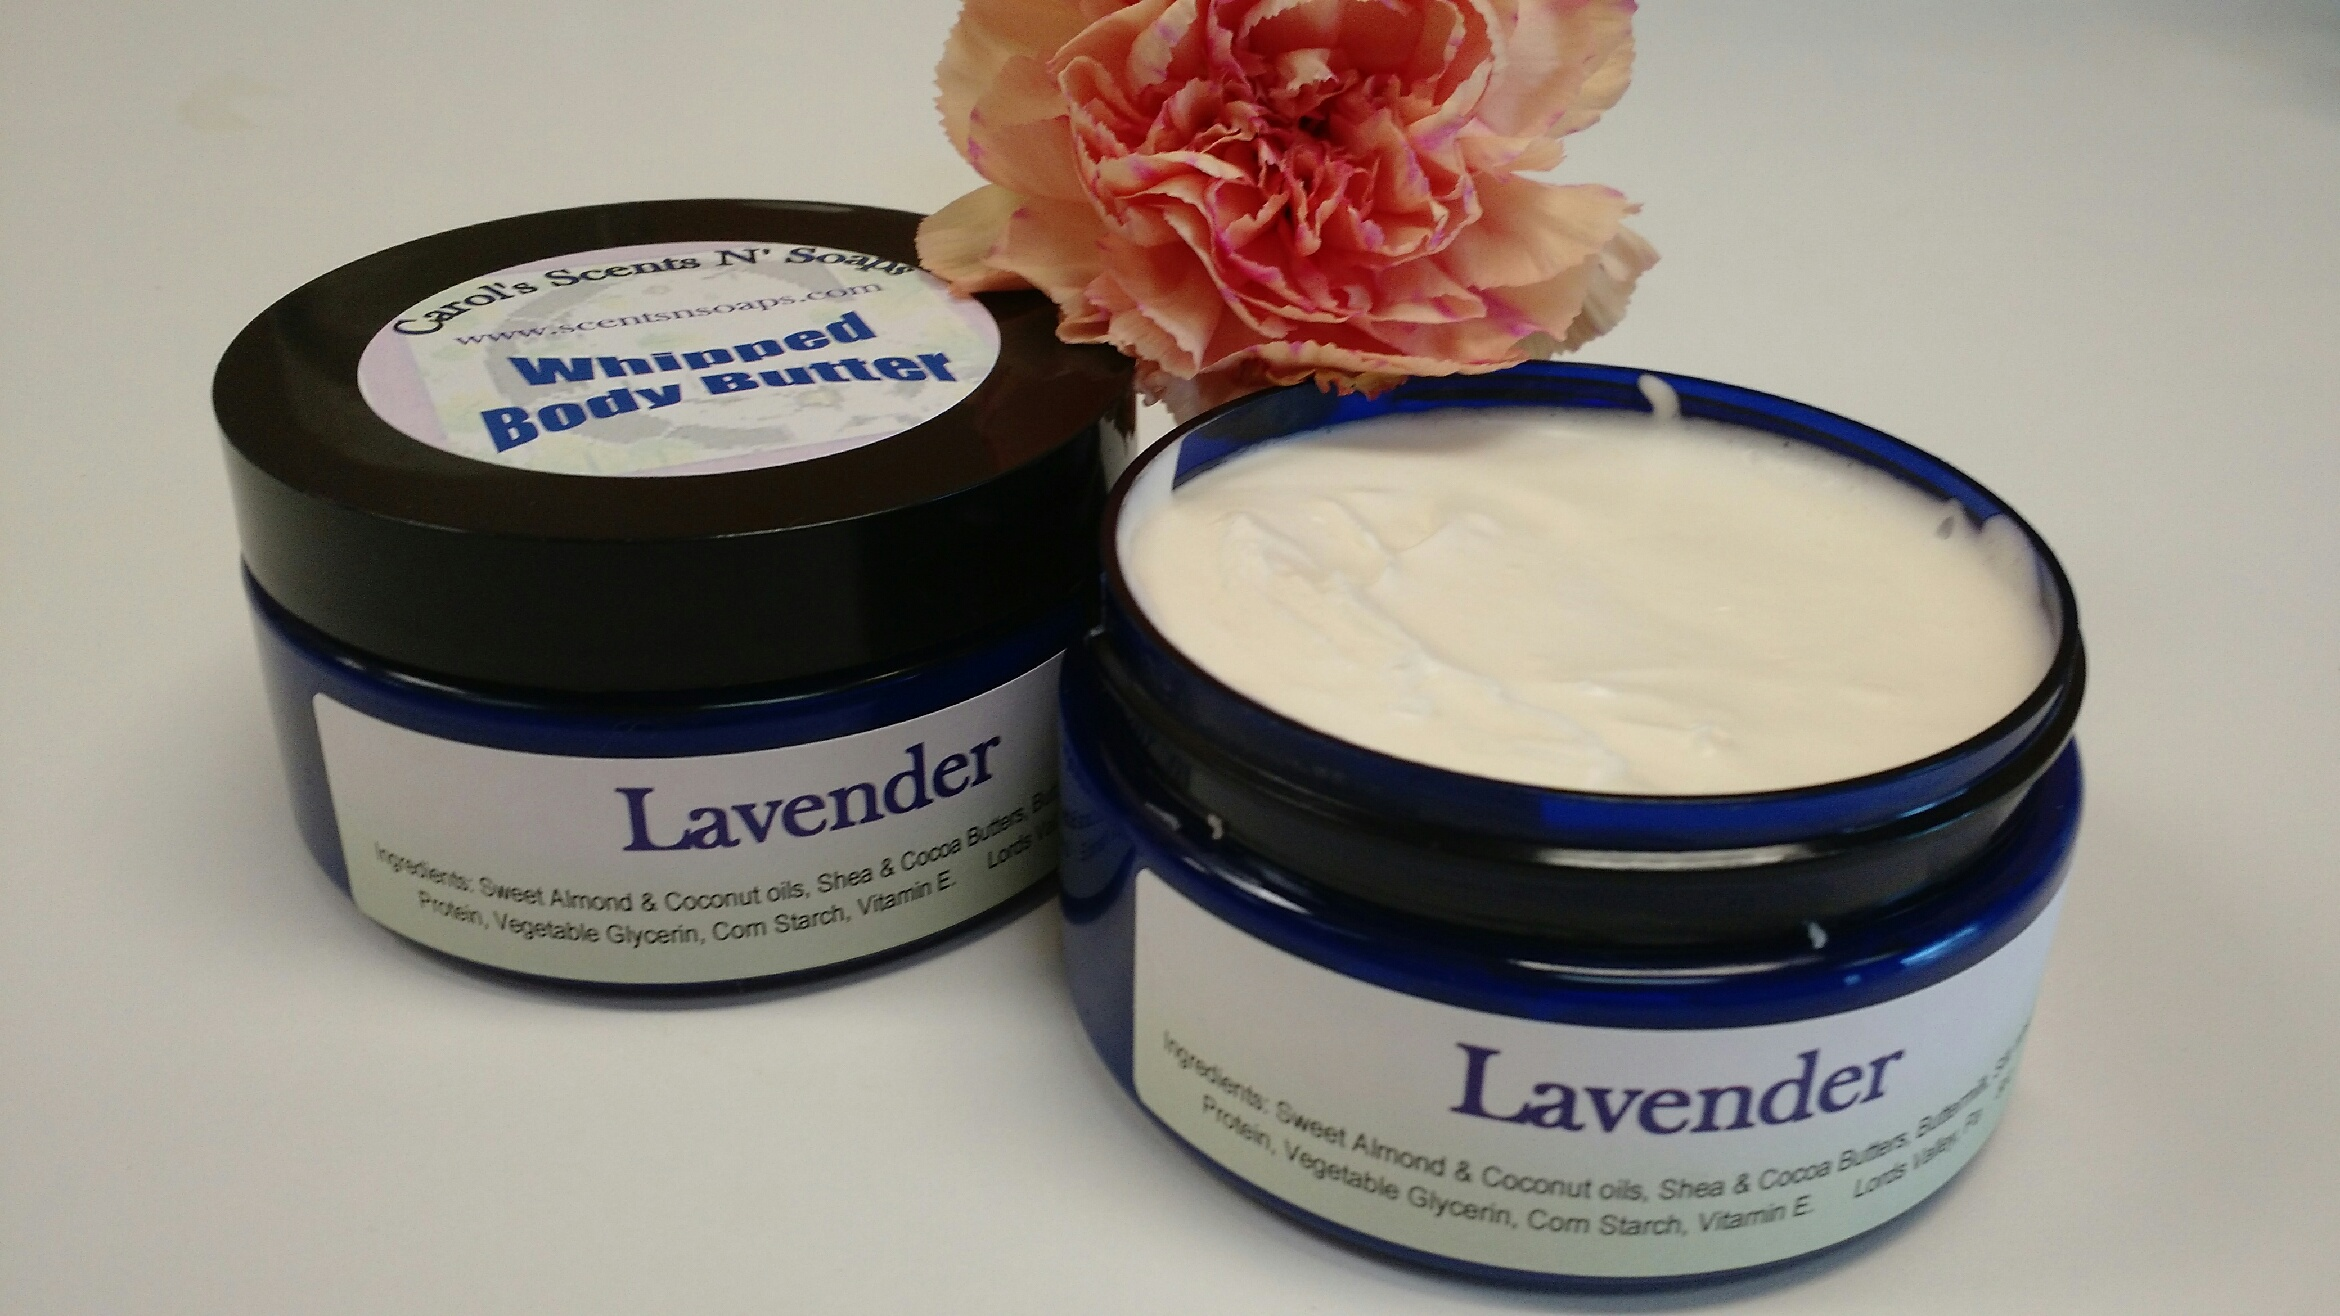 Whipped Body Butters